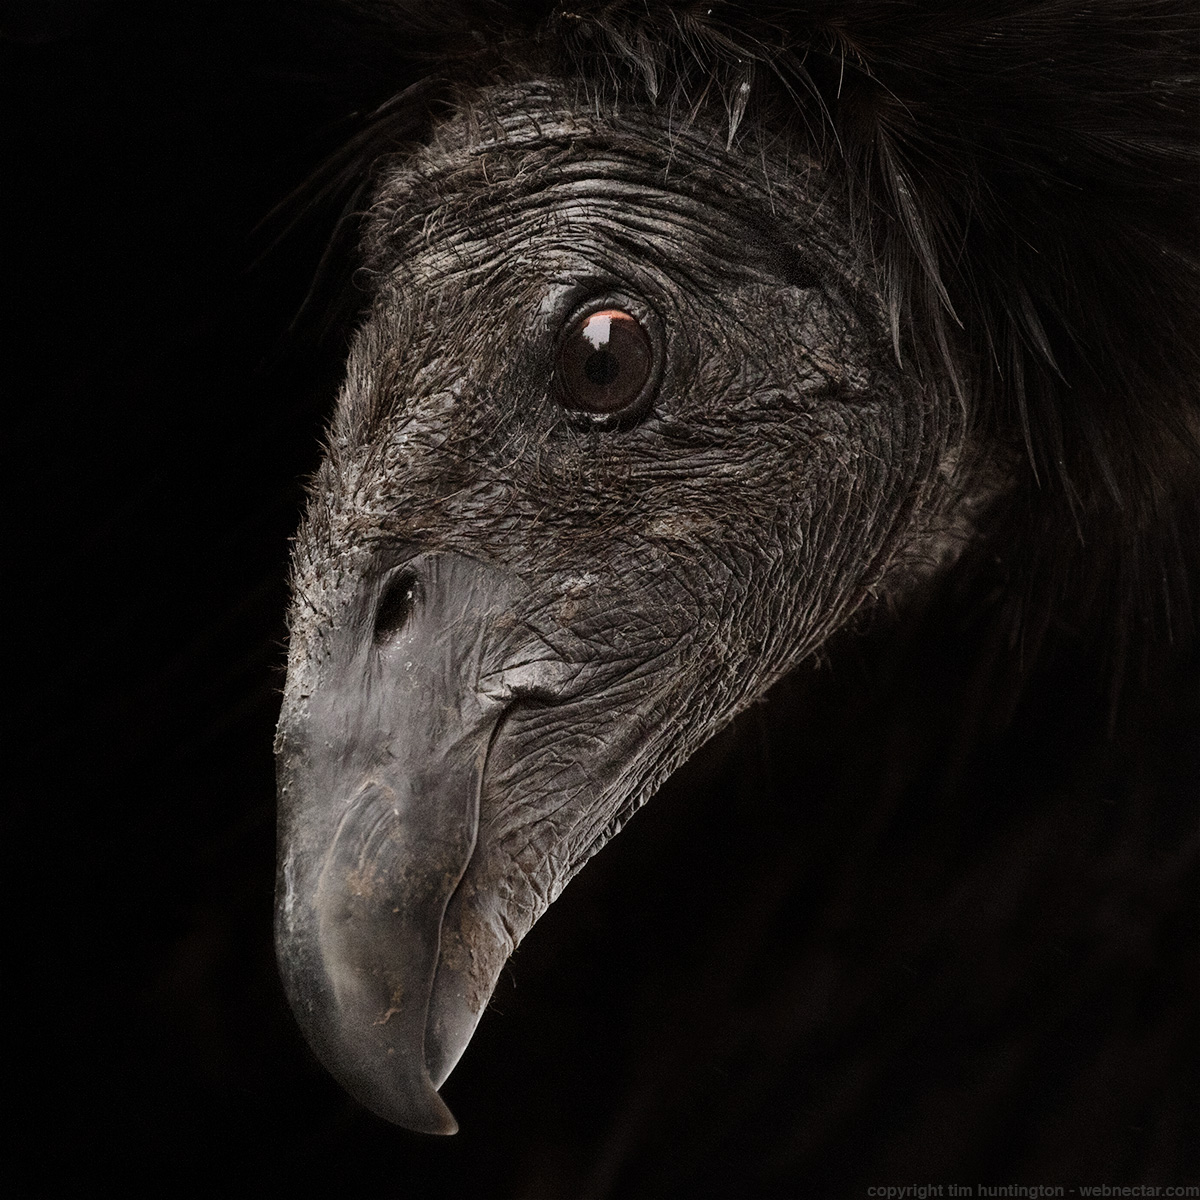 A portrait of two year old California condor #828, taken in Big Sur.